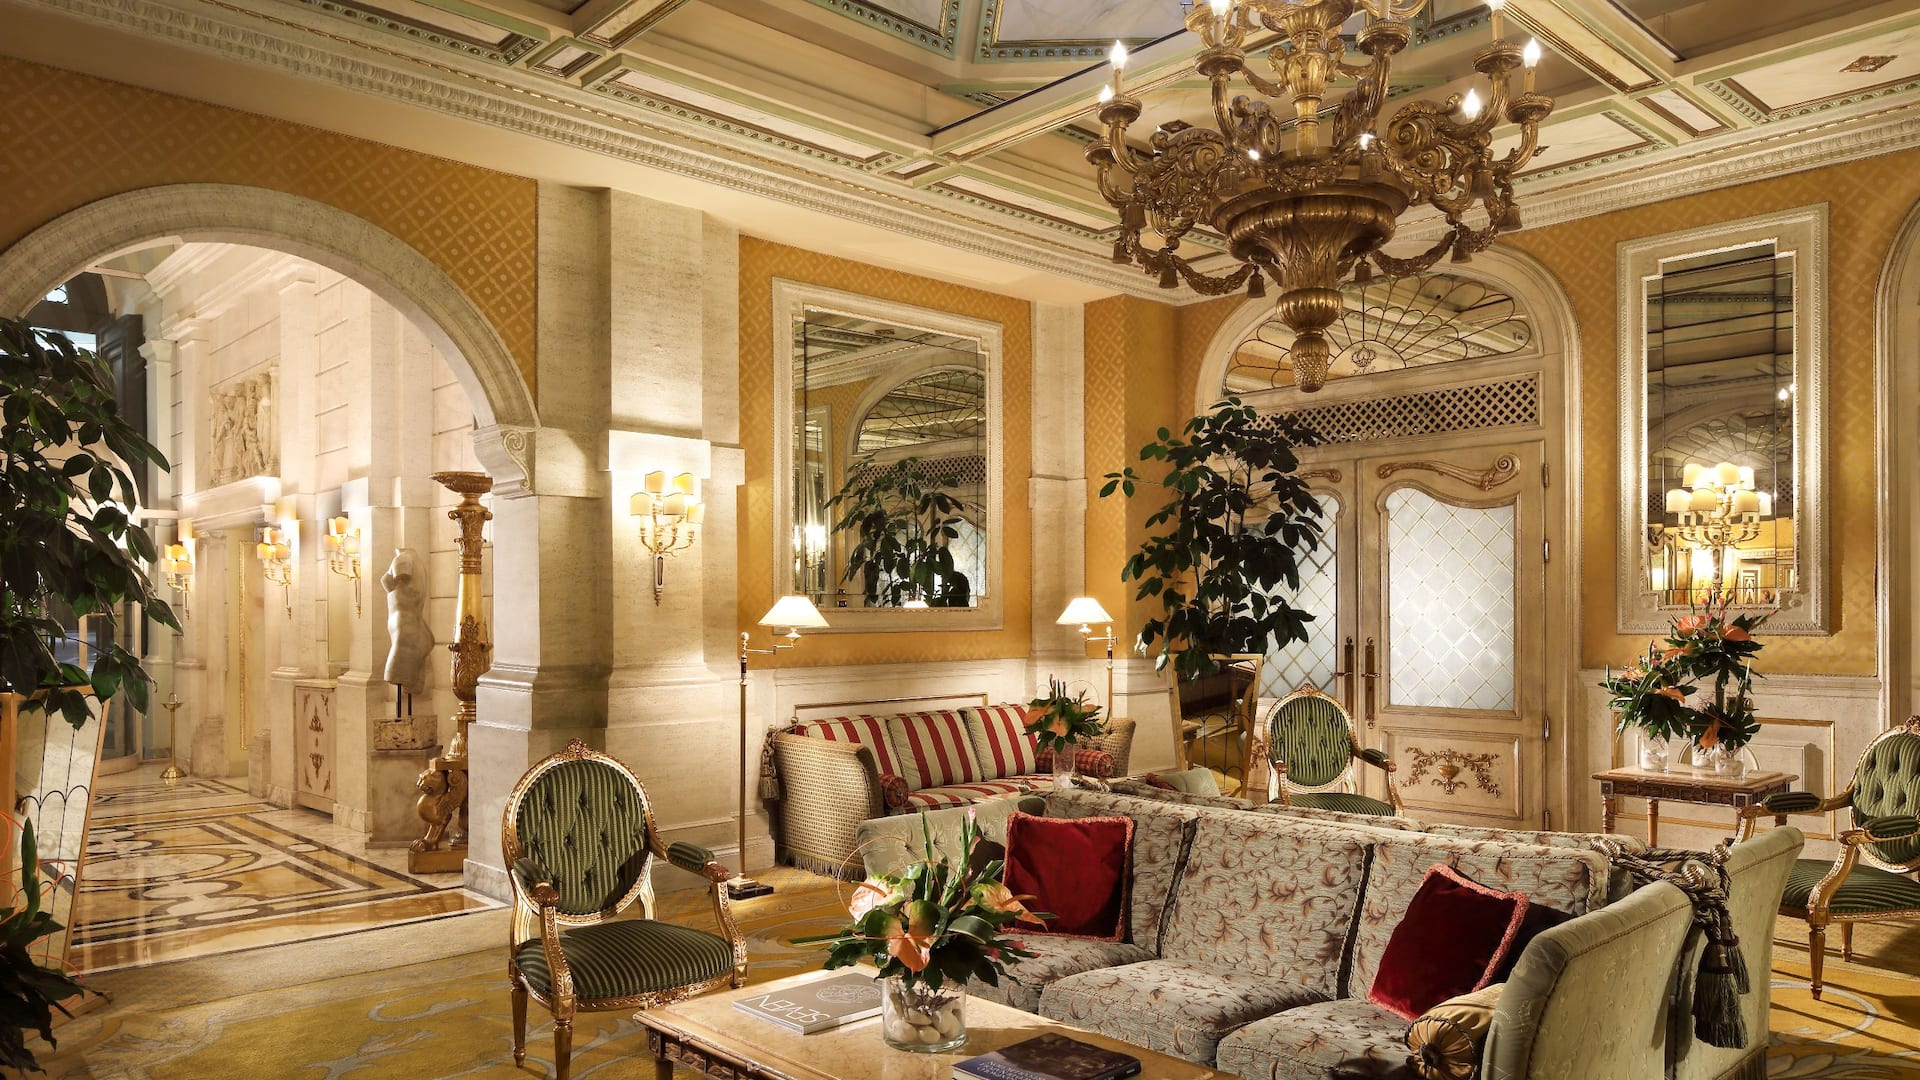 Hotel Splendide Royal lobby